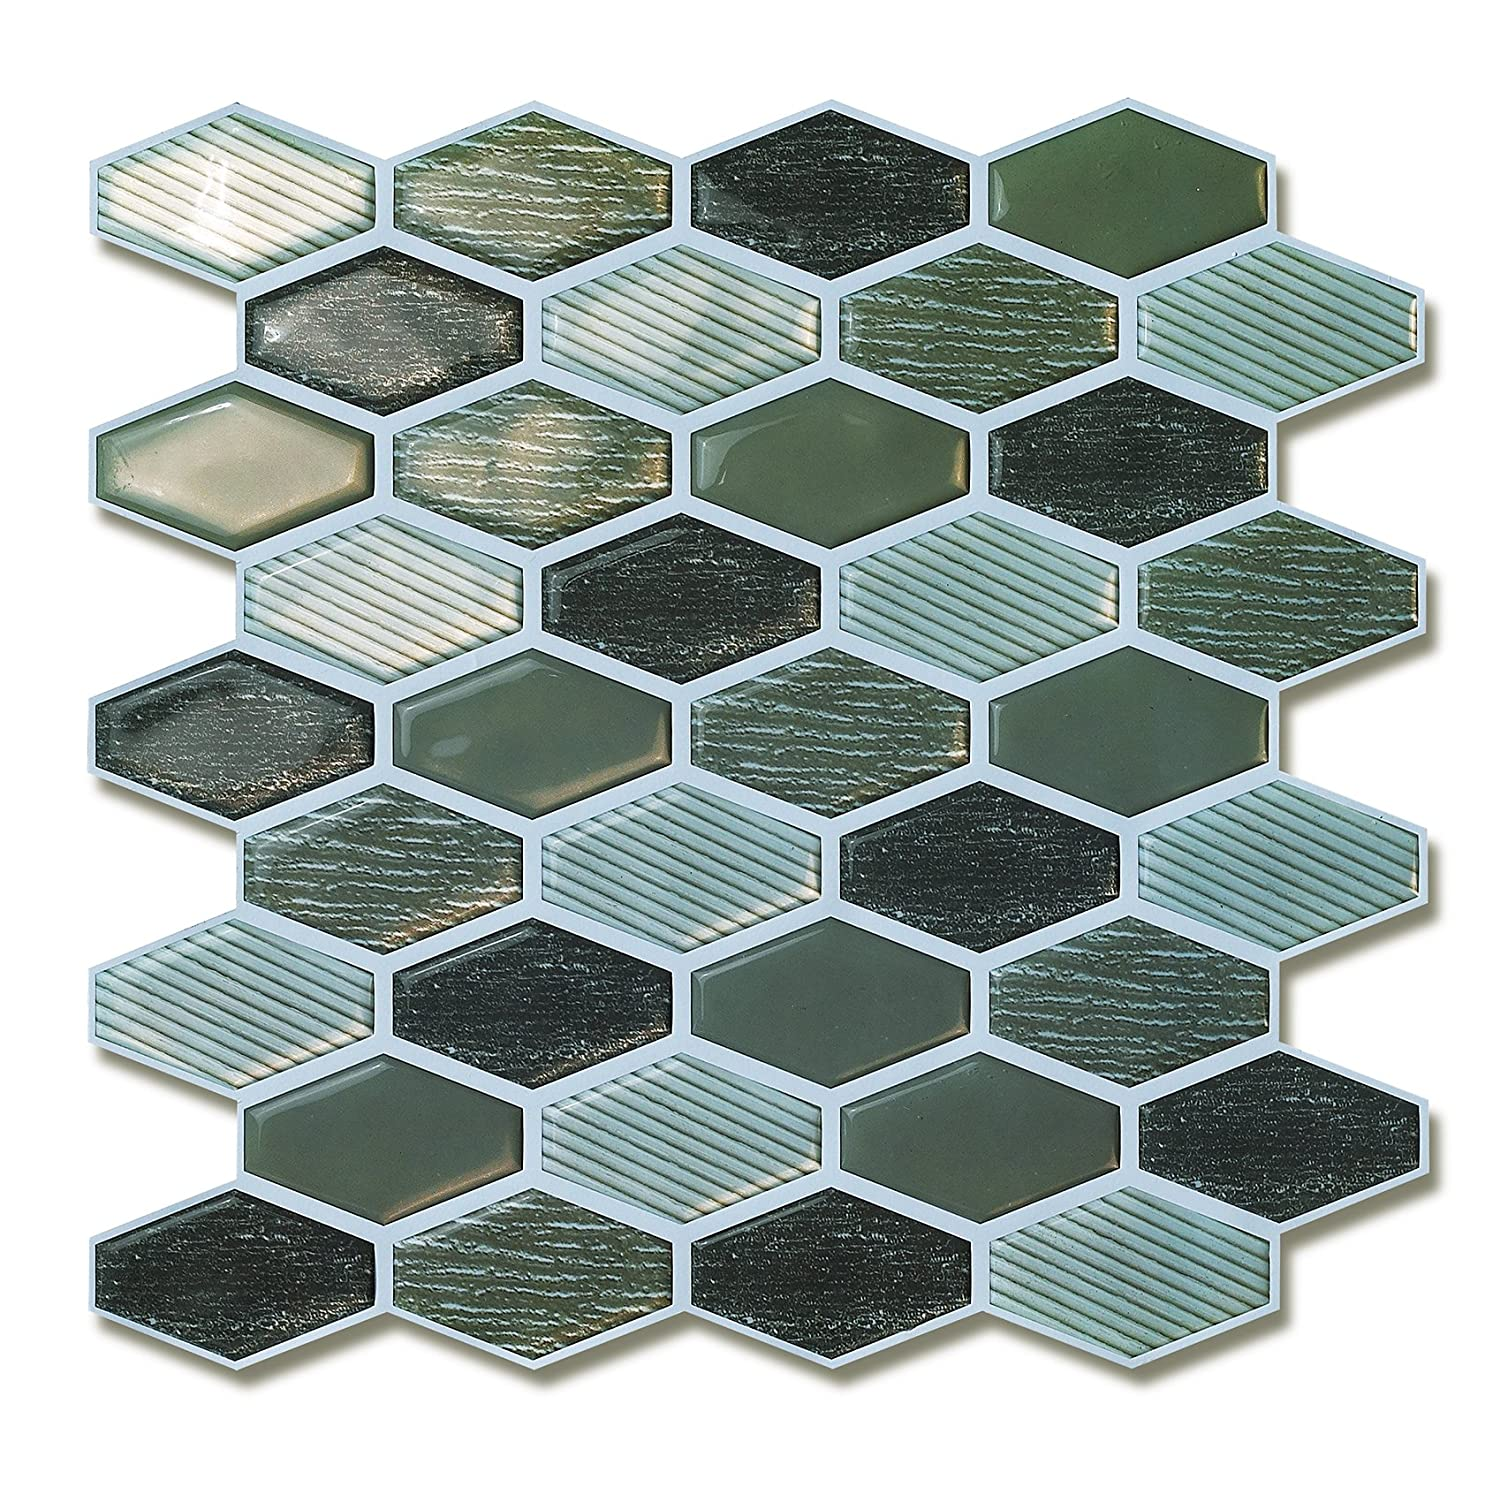 Amazon.com: Peel and Stick Backsplash Wall Tile for Home Decorative ...